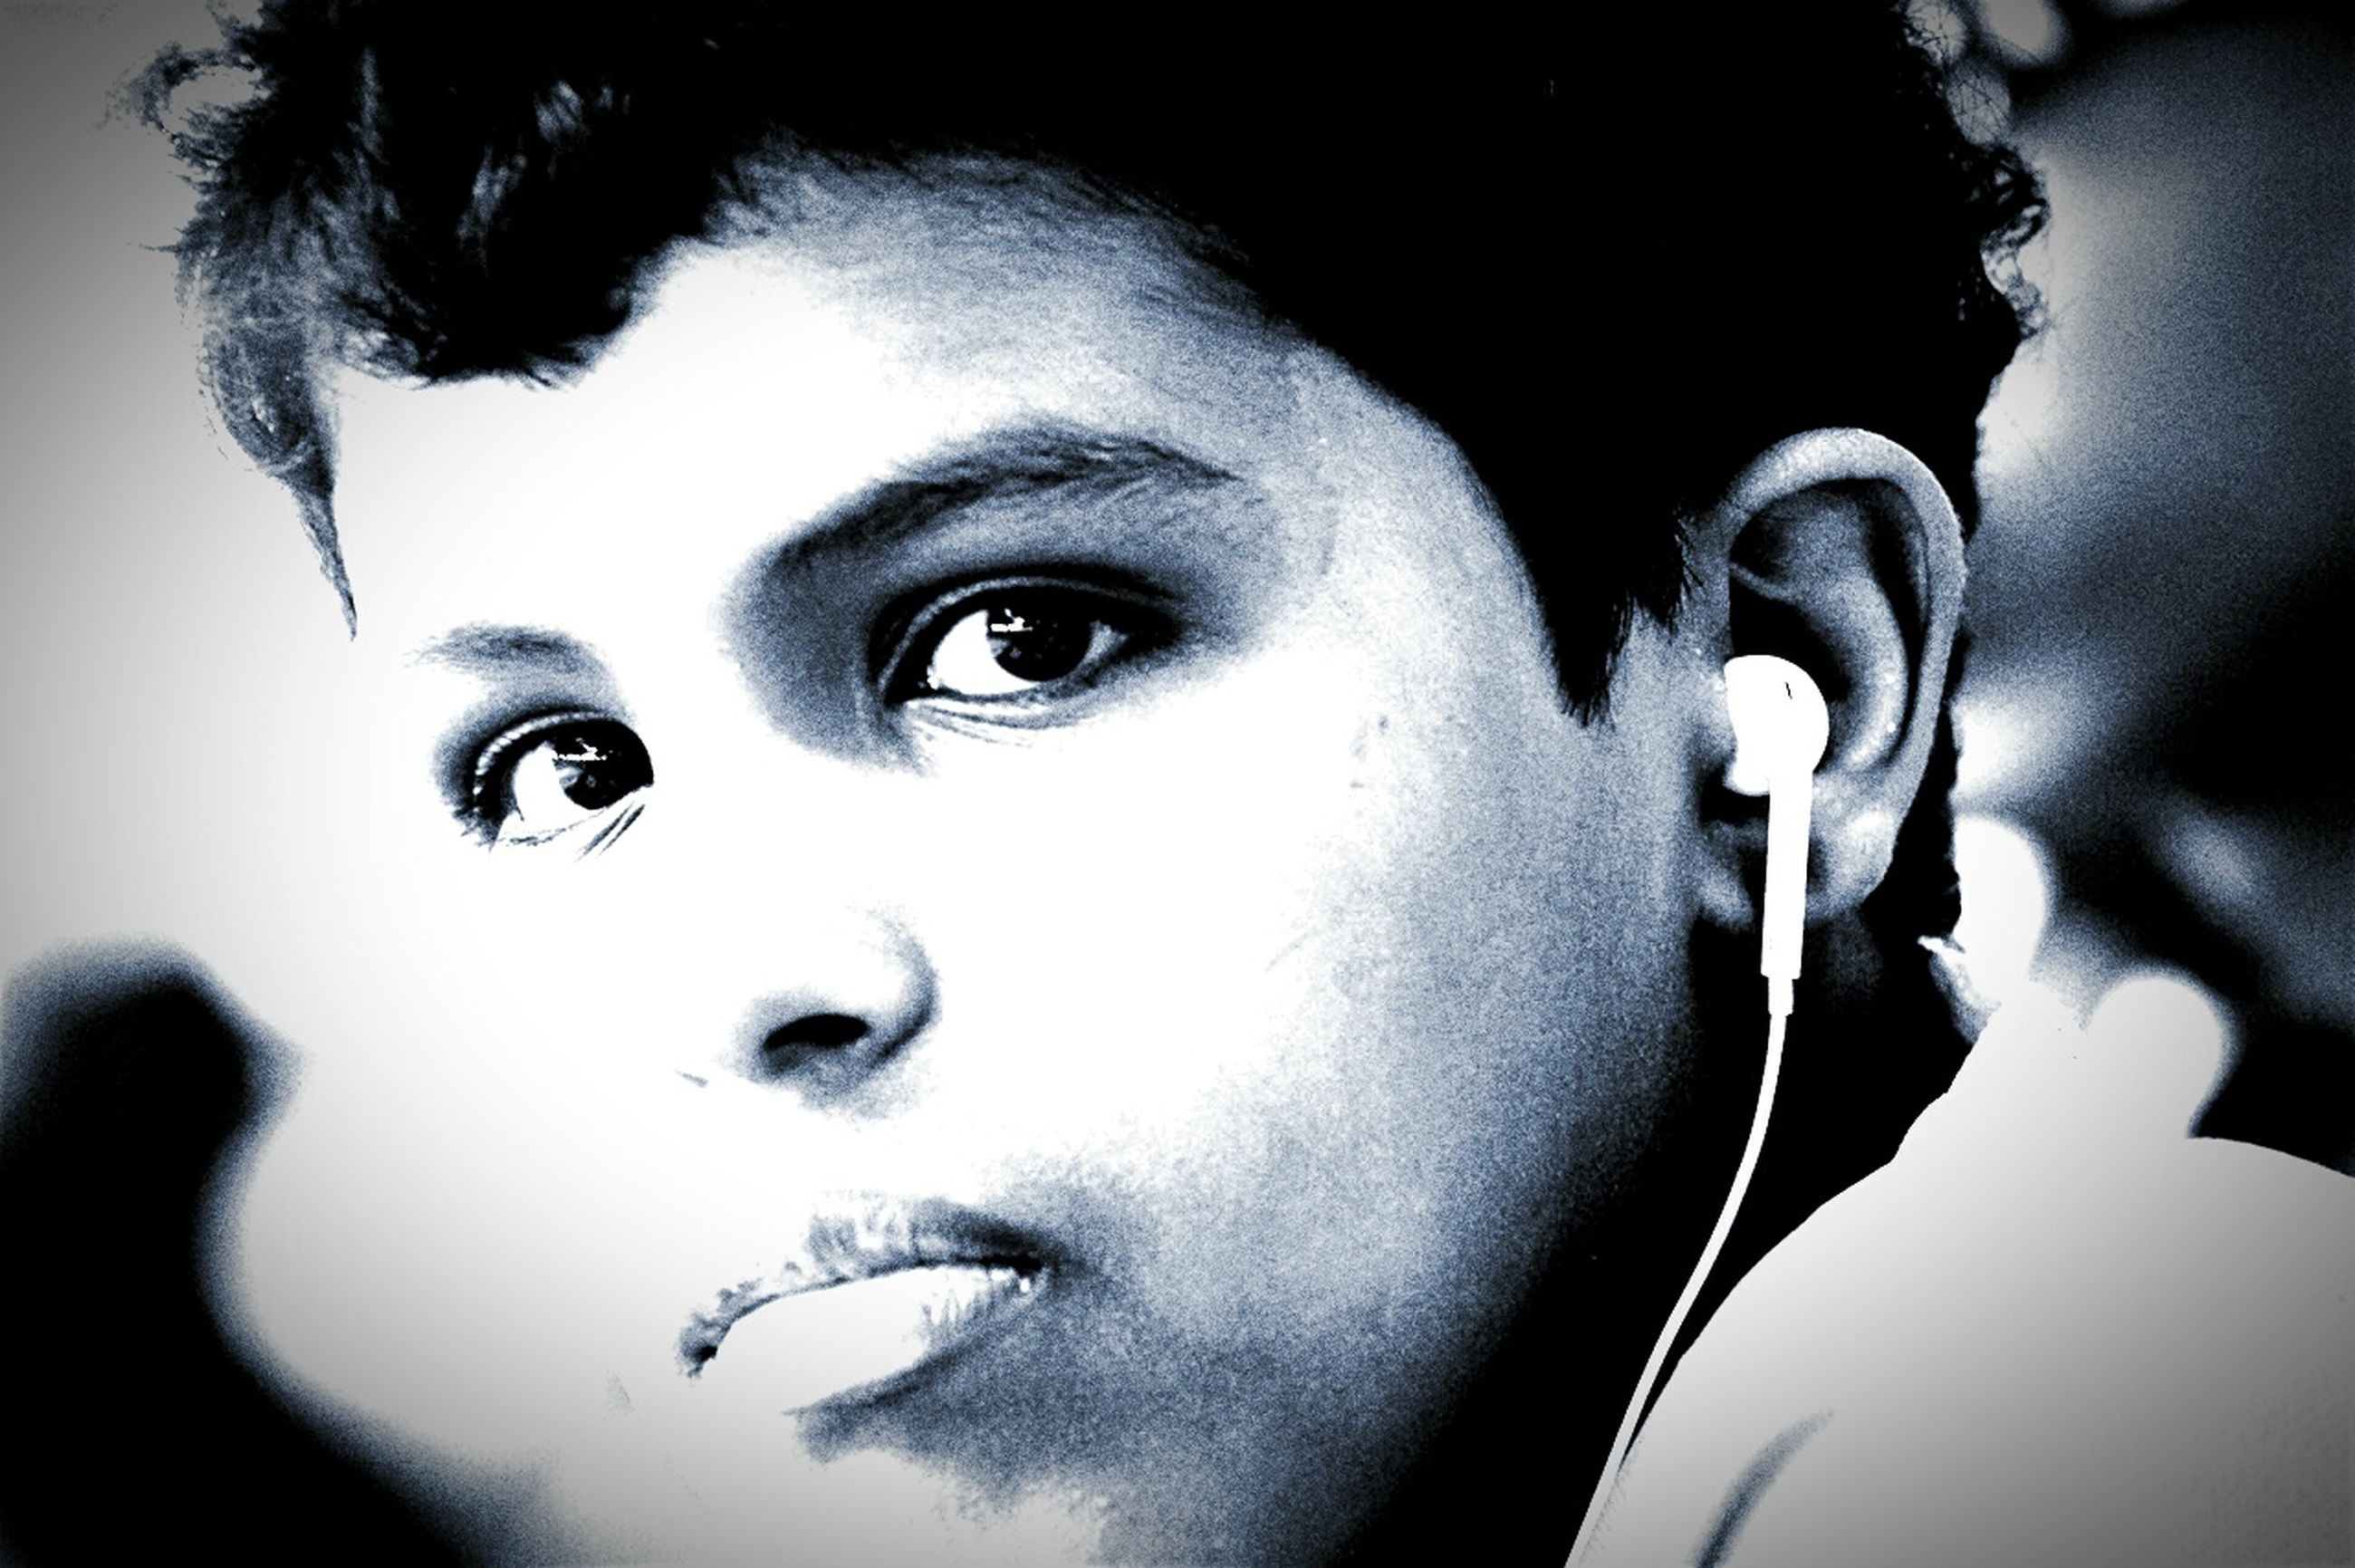 headshot, looking at camera, portrait, close-up, lifestyles, indoors, front view, person, human face, leisure activity, focus on foreground, young adult, head and shoulders, contemplation, childhood, innocence